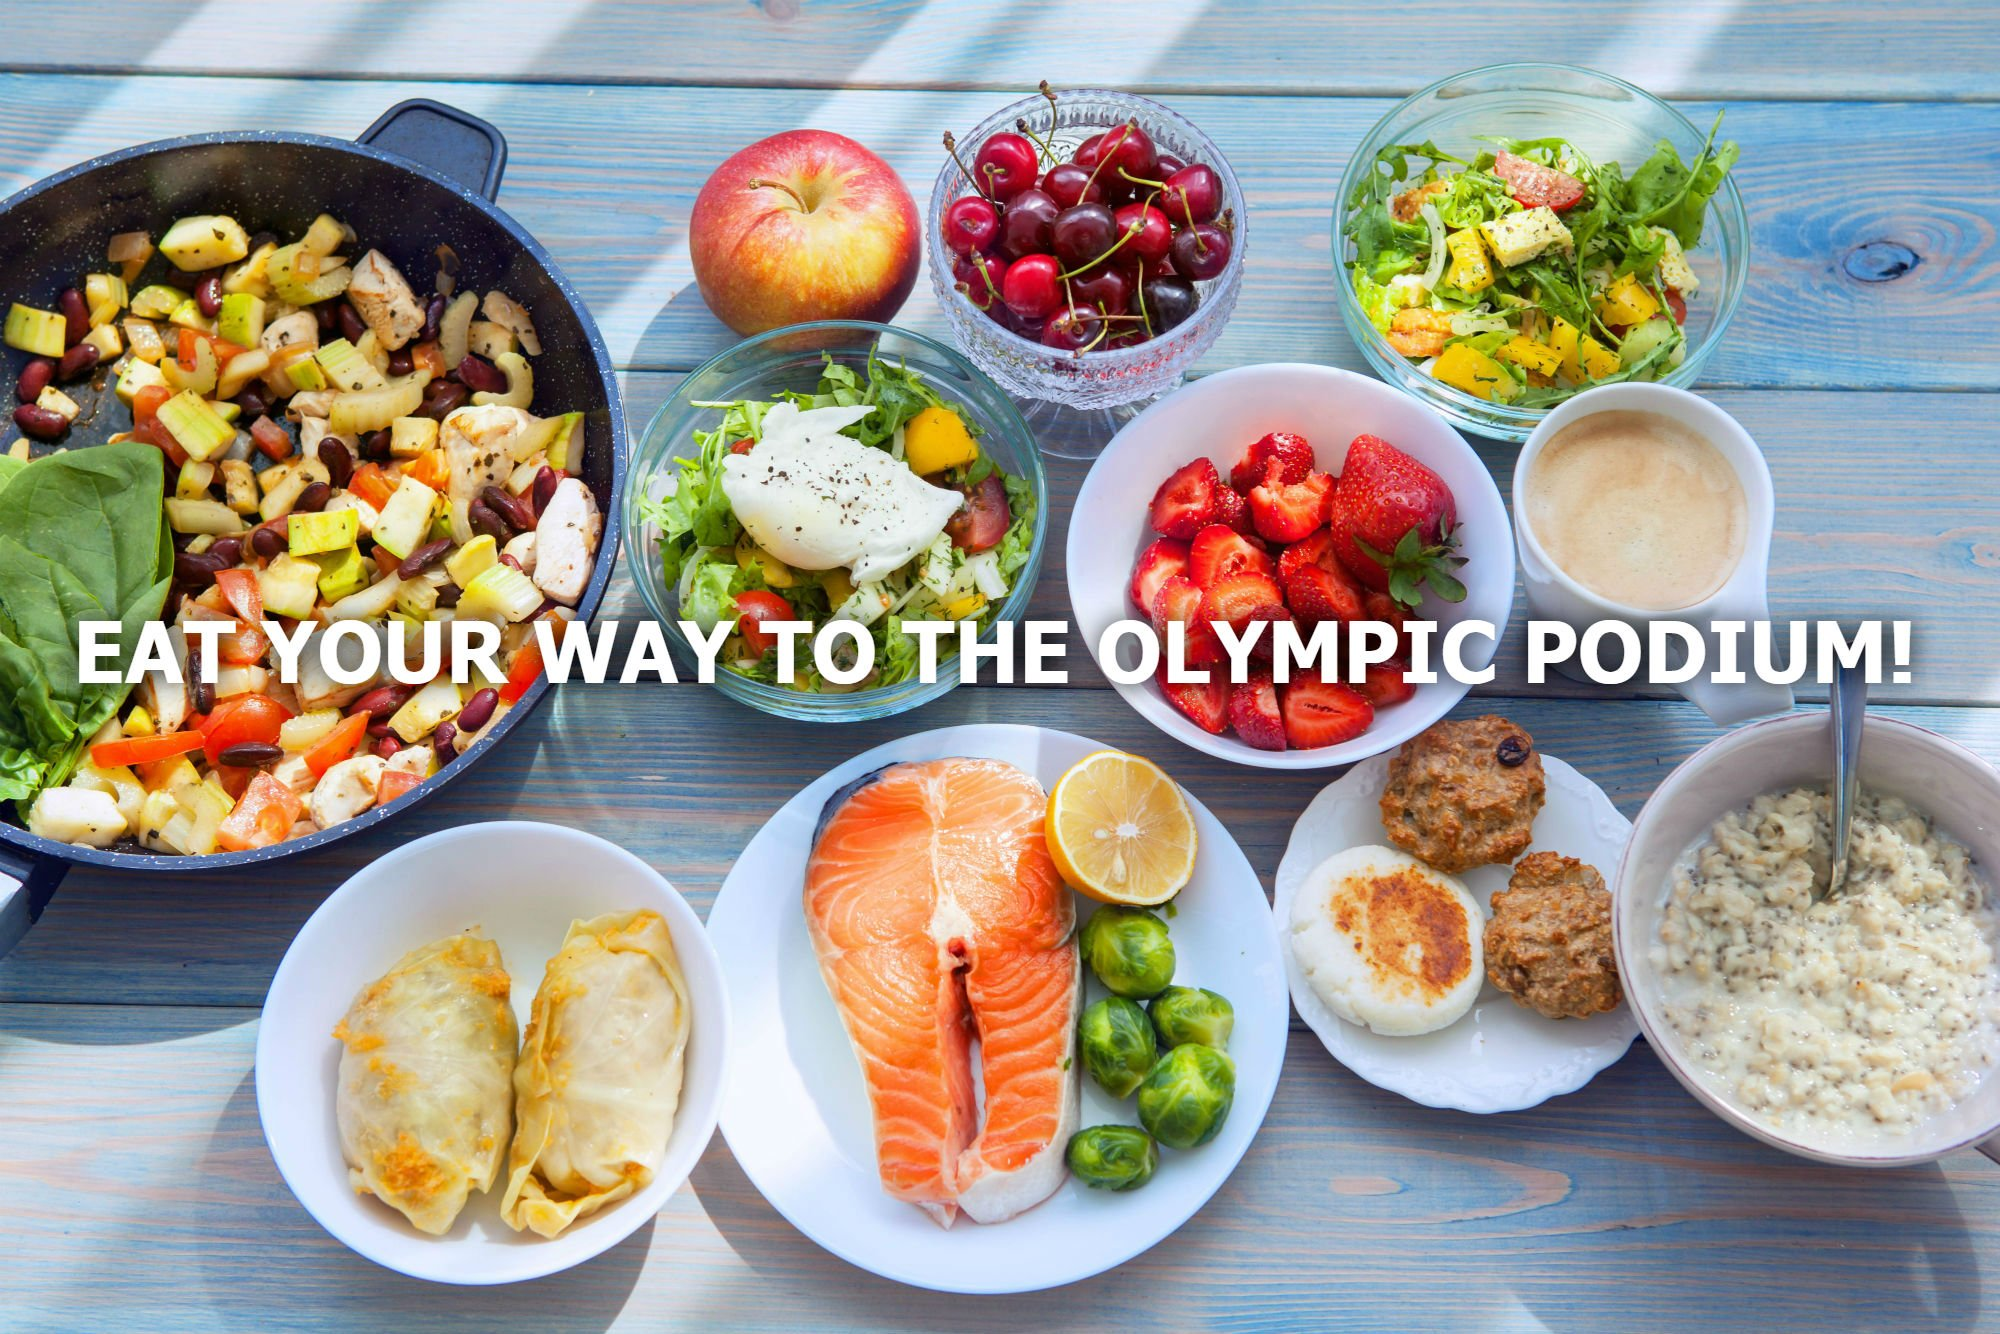 EAT YOUR WAY TO THE OLYMPIC PODIUM!